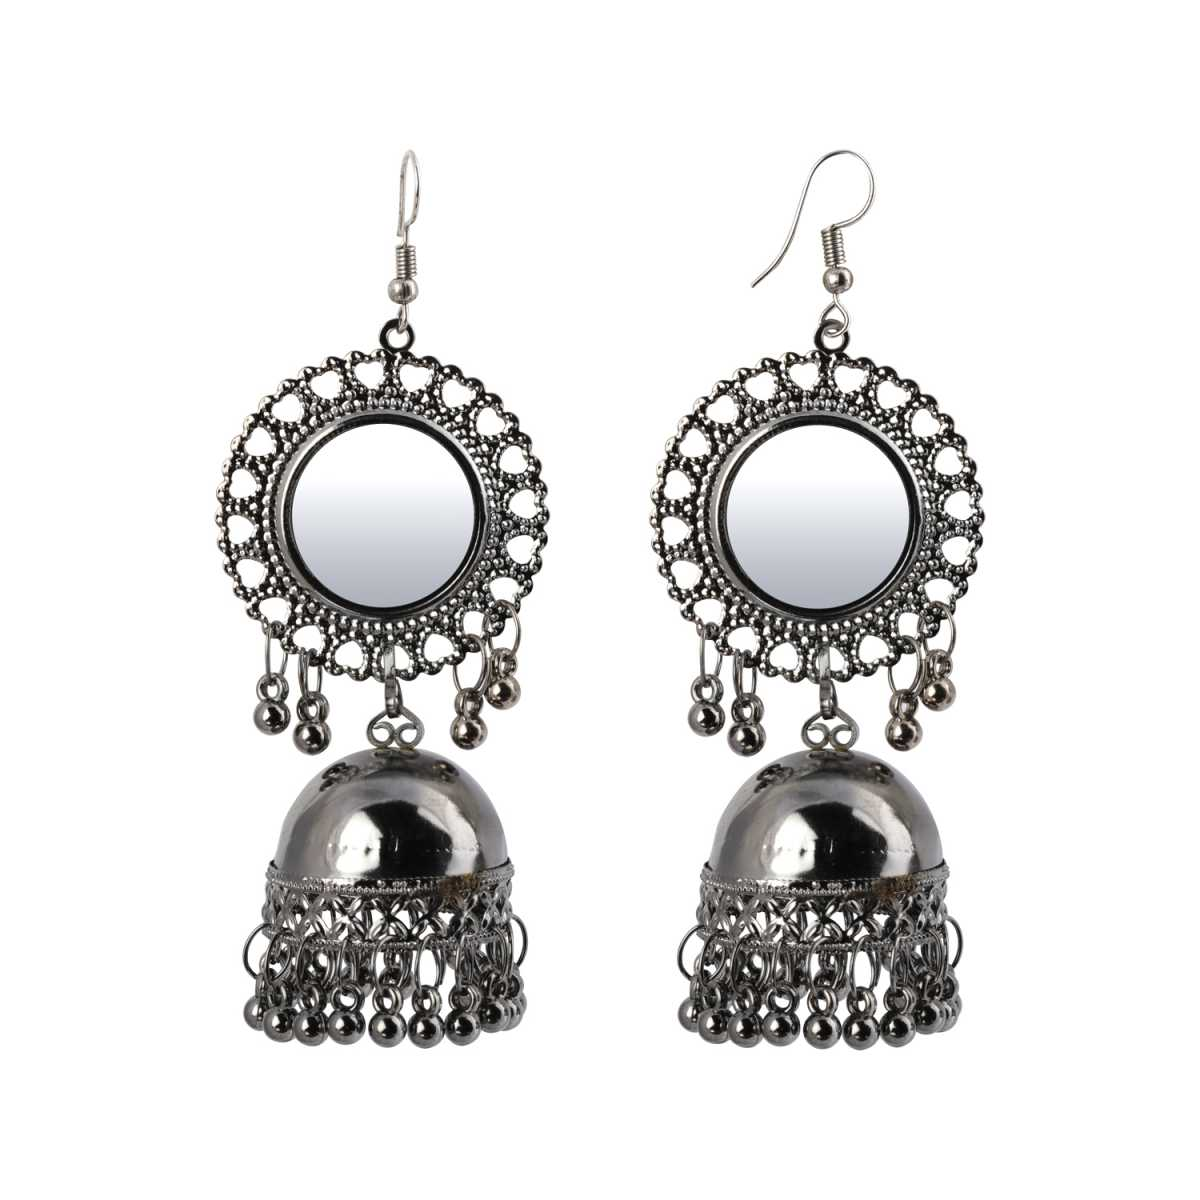 Silver Shine Trendy Silver Mirror Jhumki with Small Danglers Earrings for Women